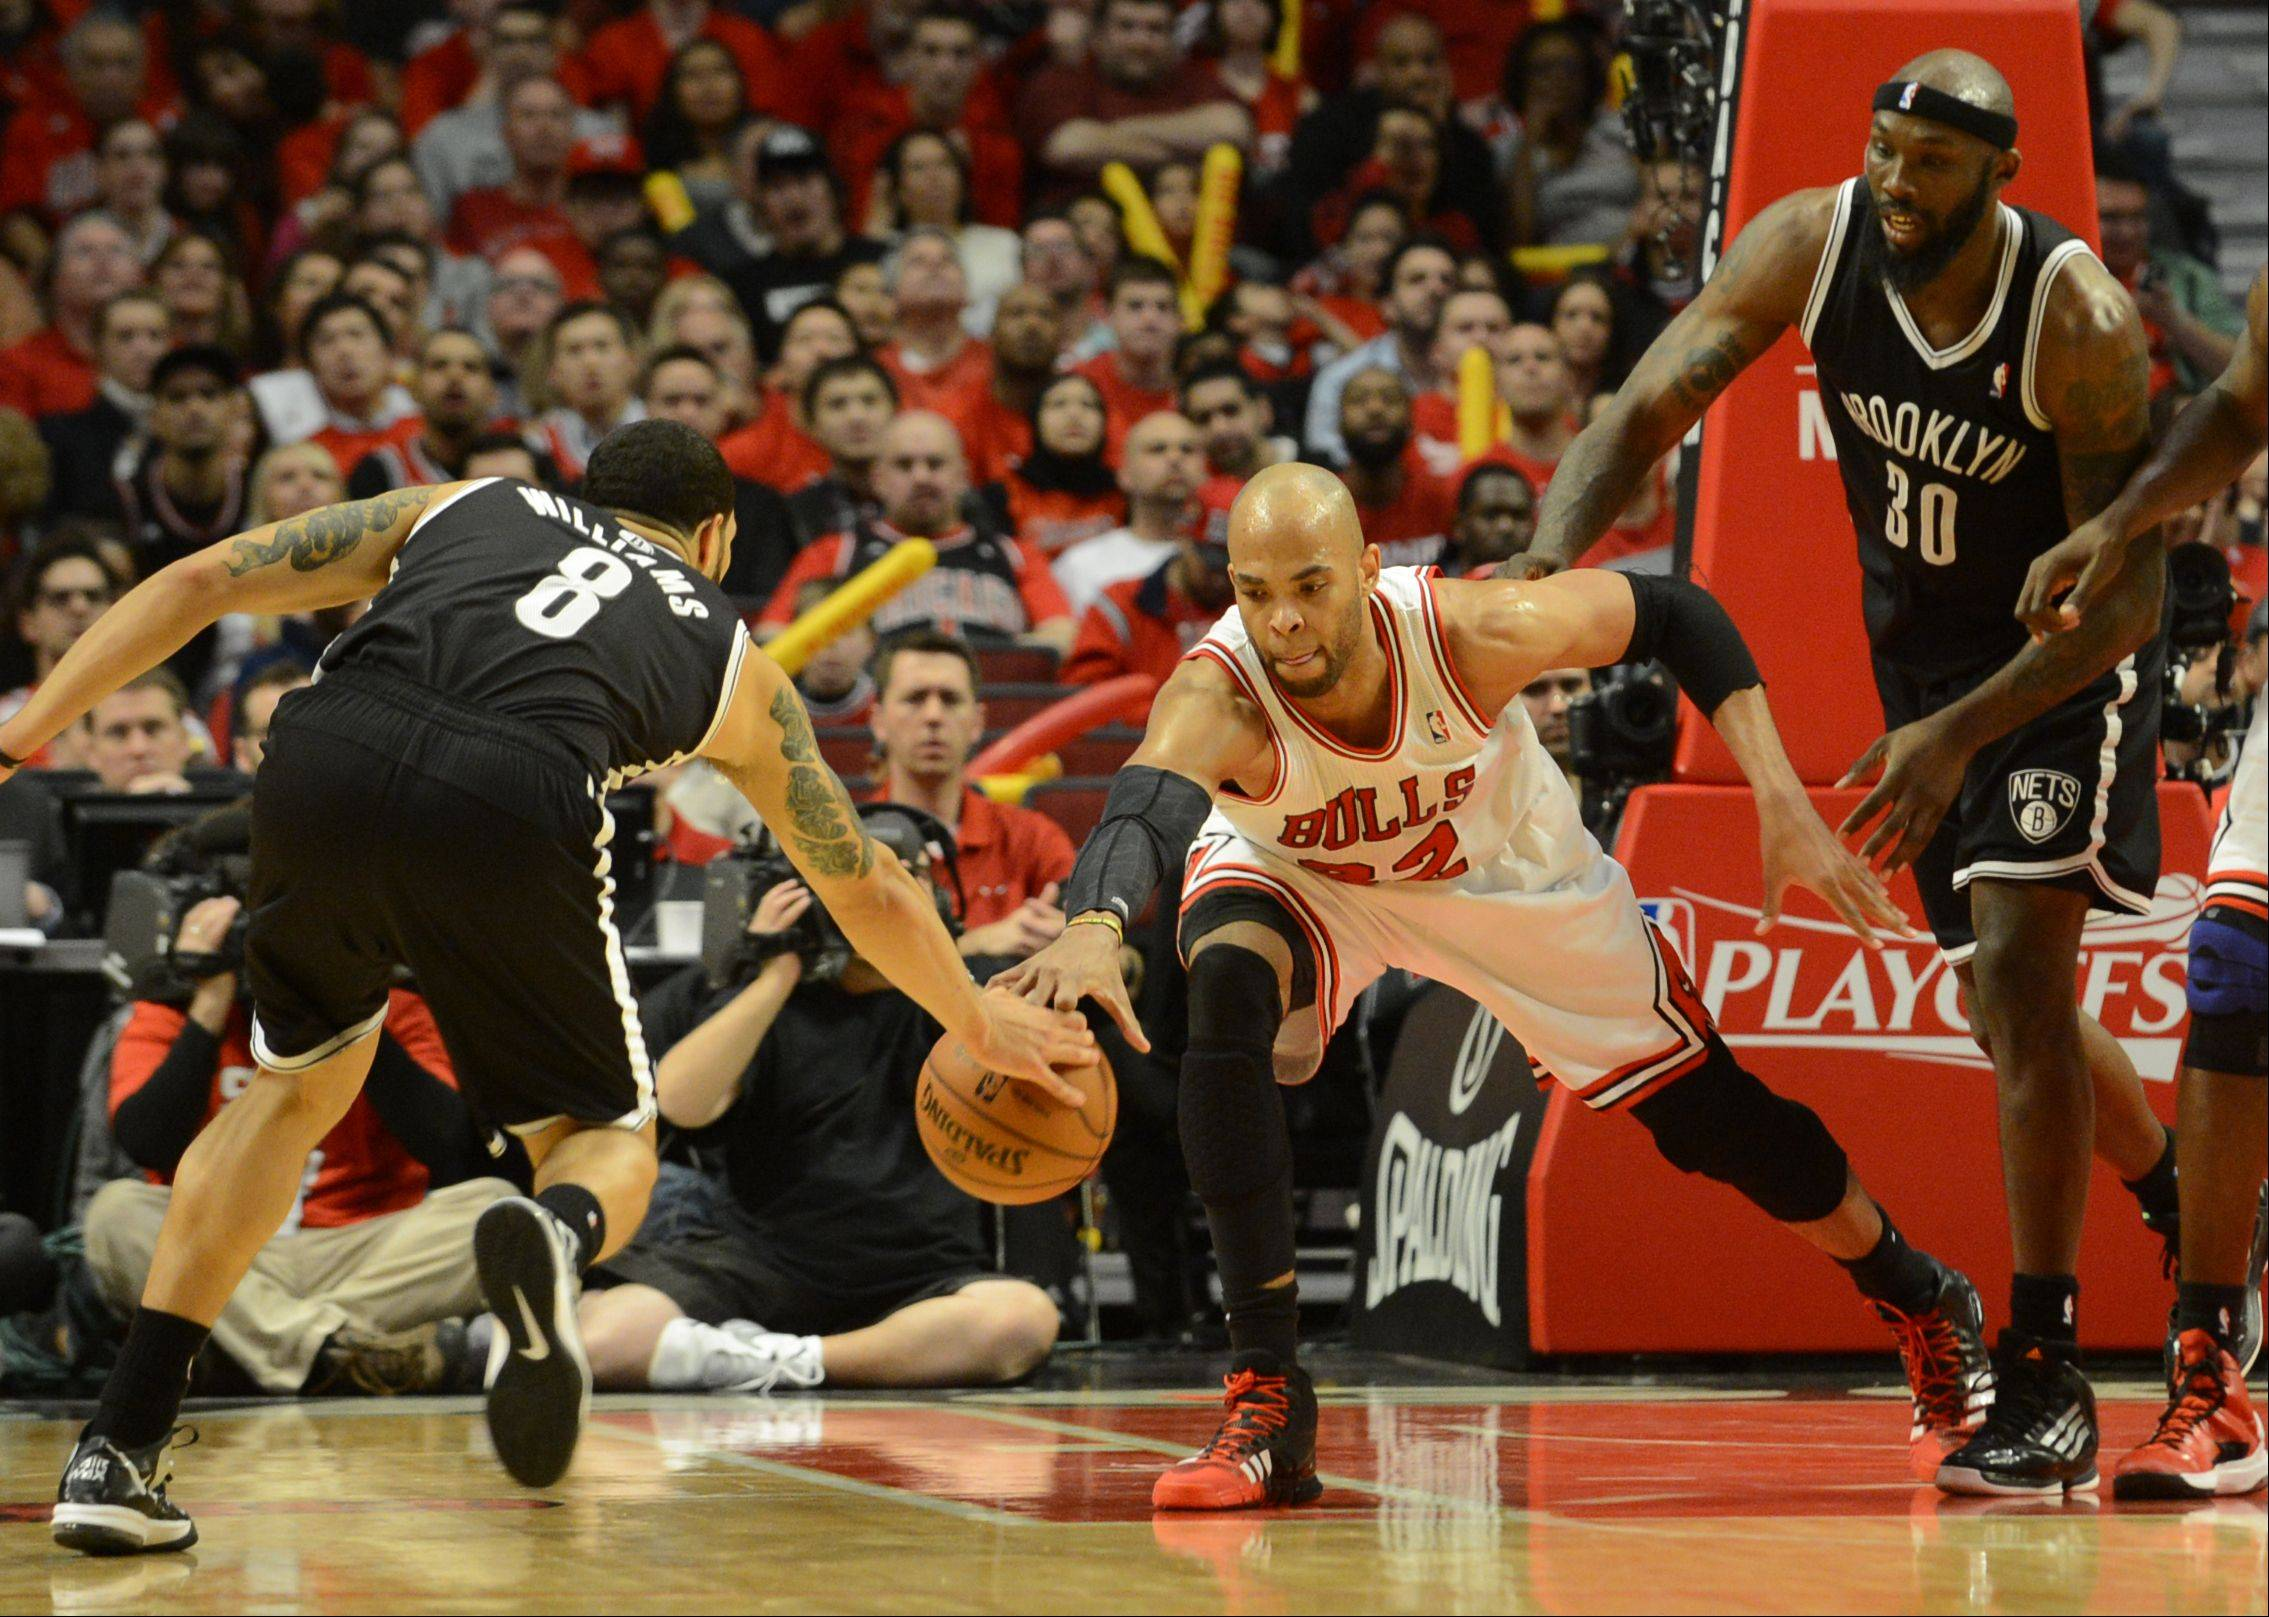 The Bulls Taj Gibson goes for the ball against Brooklyn's Deron Williams, left, Saturday during game 4 of the first round playoff game against the Brooklyn Nets at the United Center. The Bulls won in triple overtime 142-134